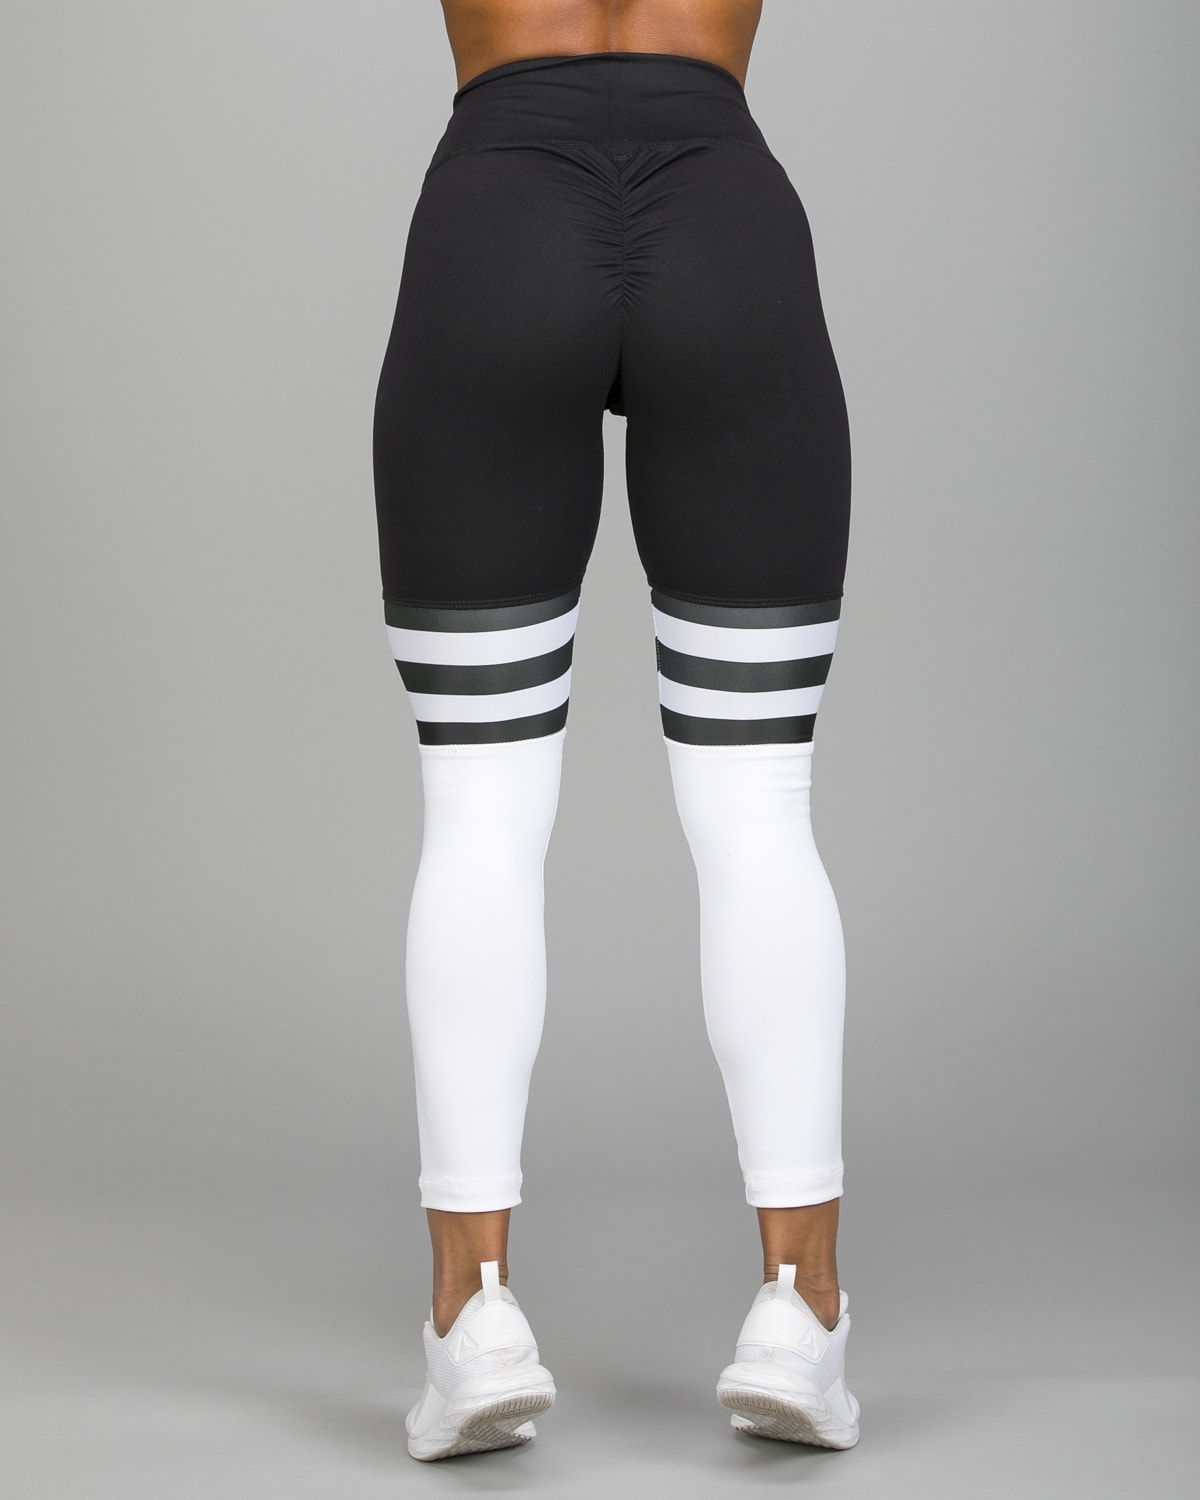 ABS2B Fitness High Knee Stripes Black.White1